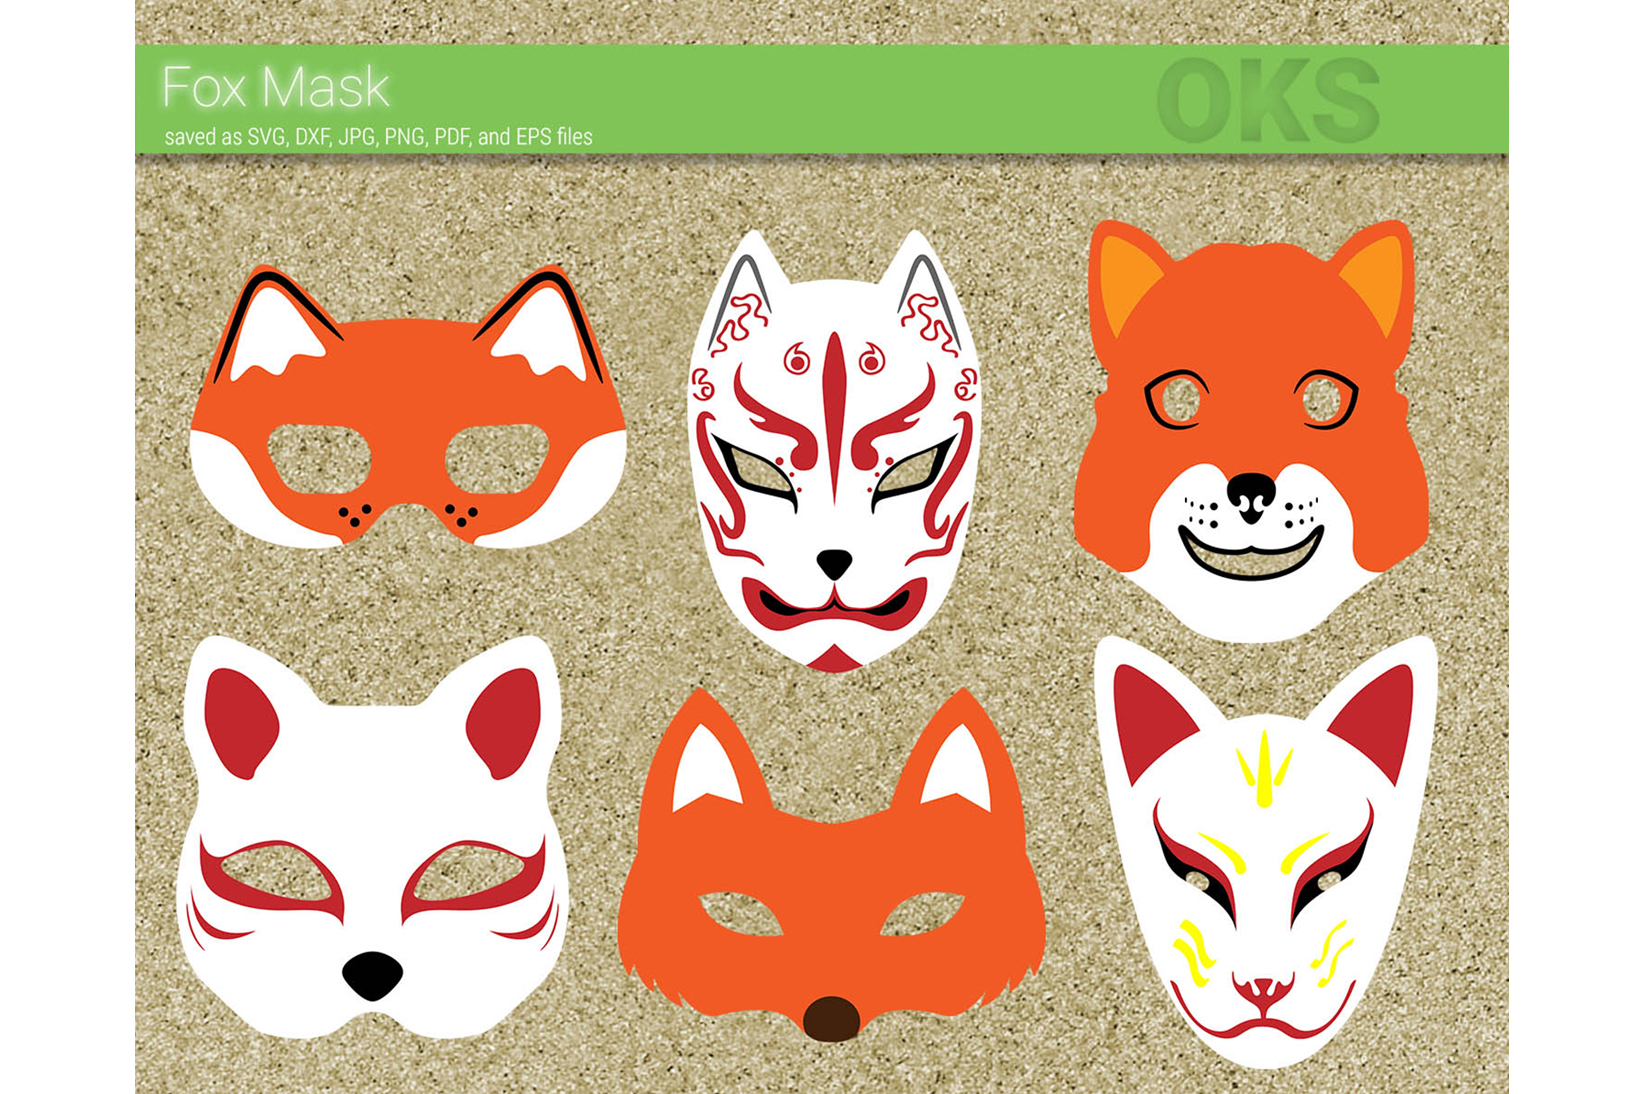 Download Free Fox Mask Vector Graphic By Crafteroks Creative Fabrica for Cricut Explore, Silhouette and other cutting machines.